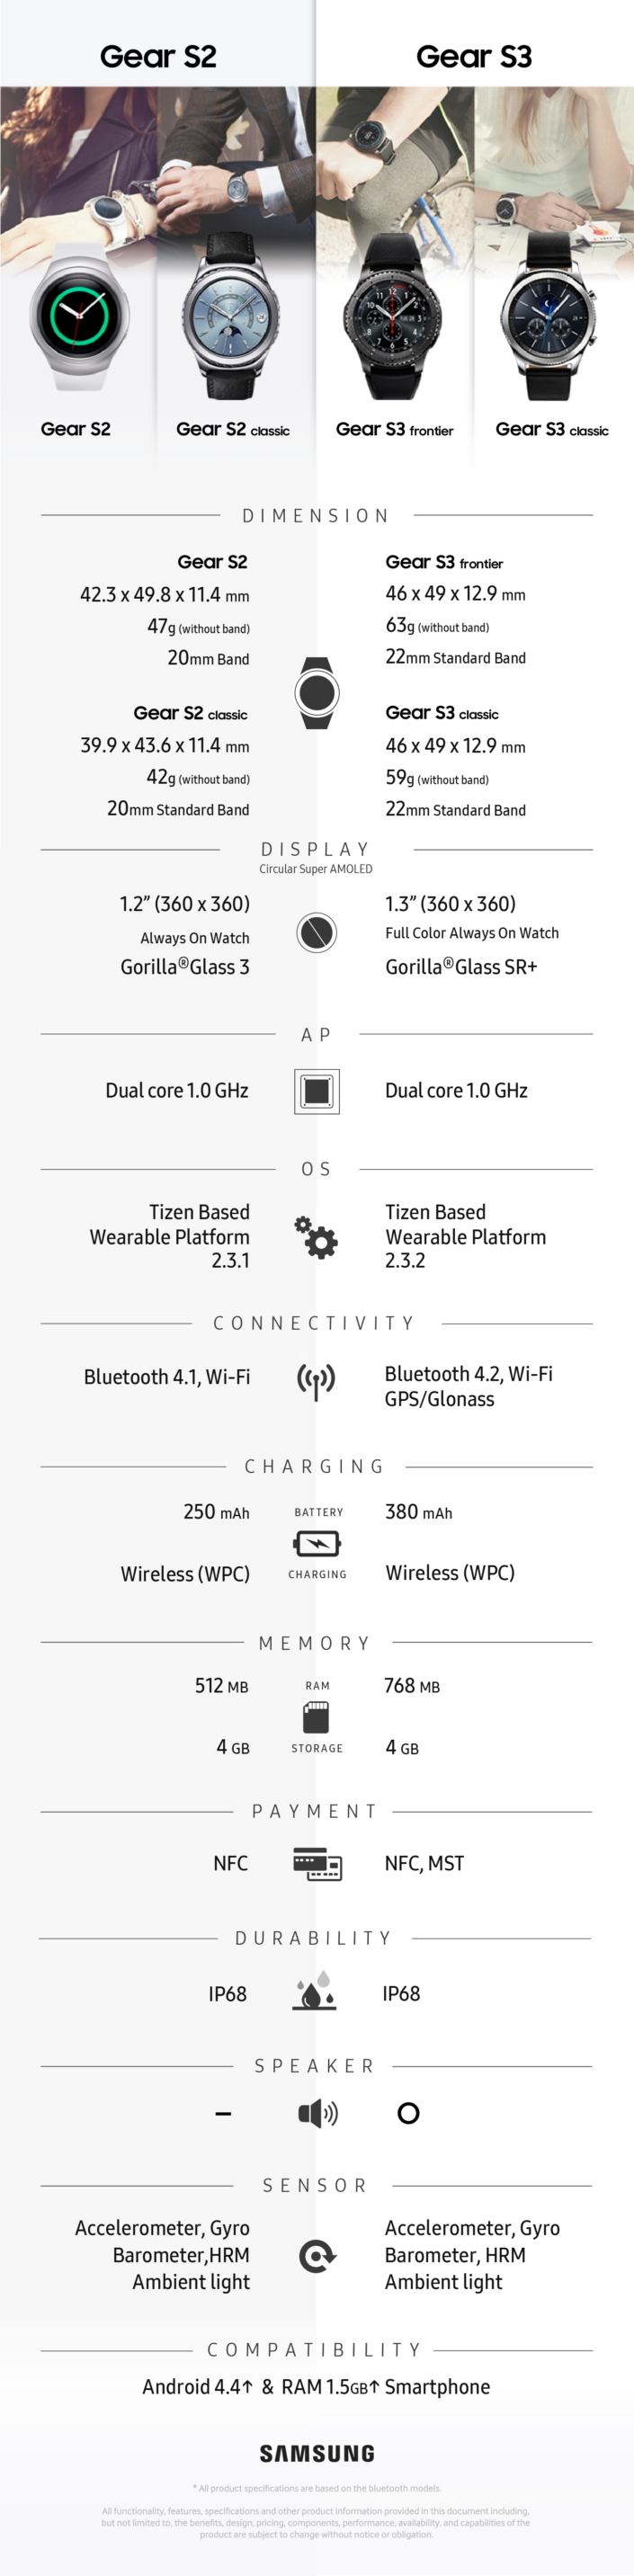 samsung-Gear-S3_Comparison_Infographic-plaza